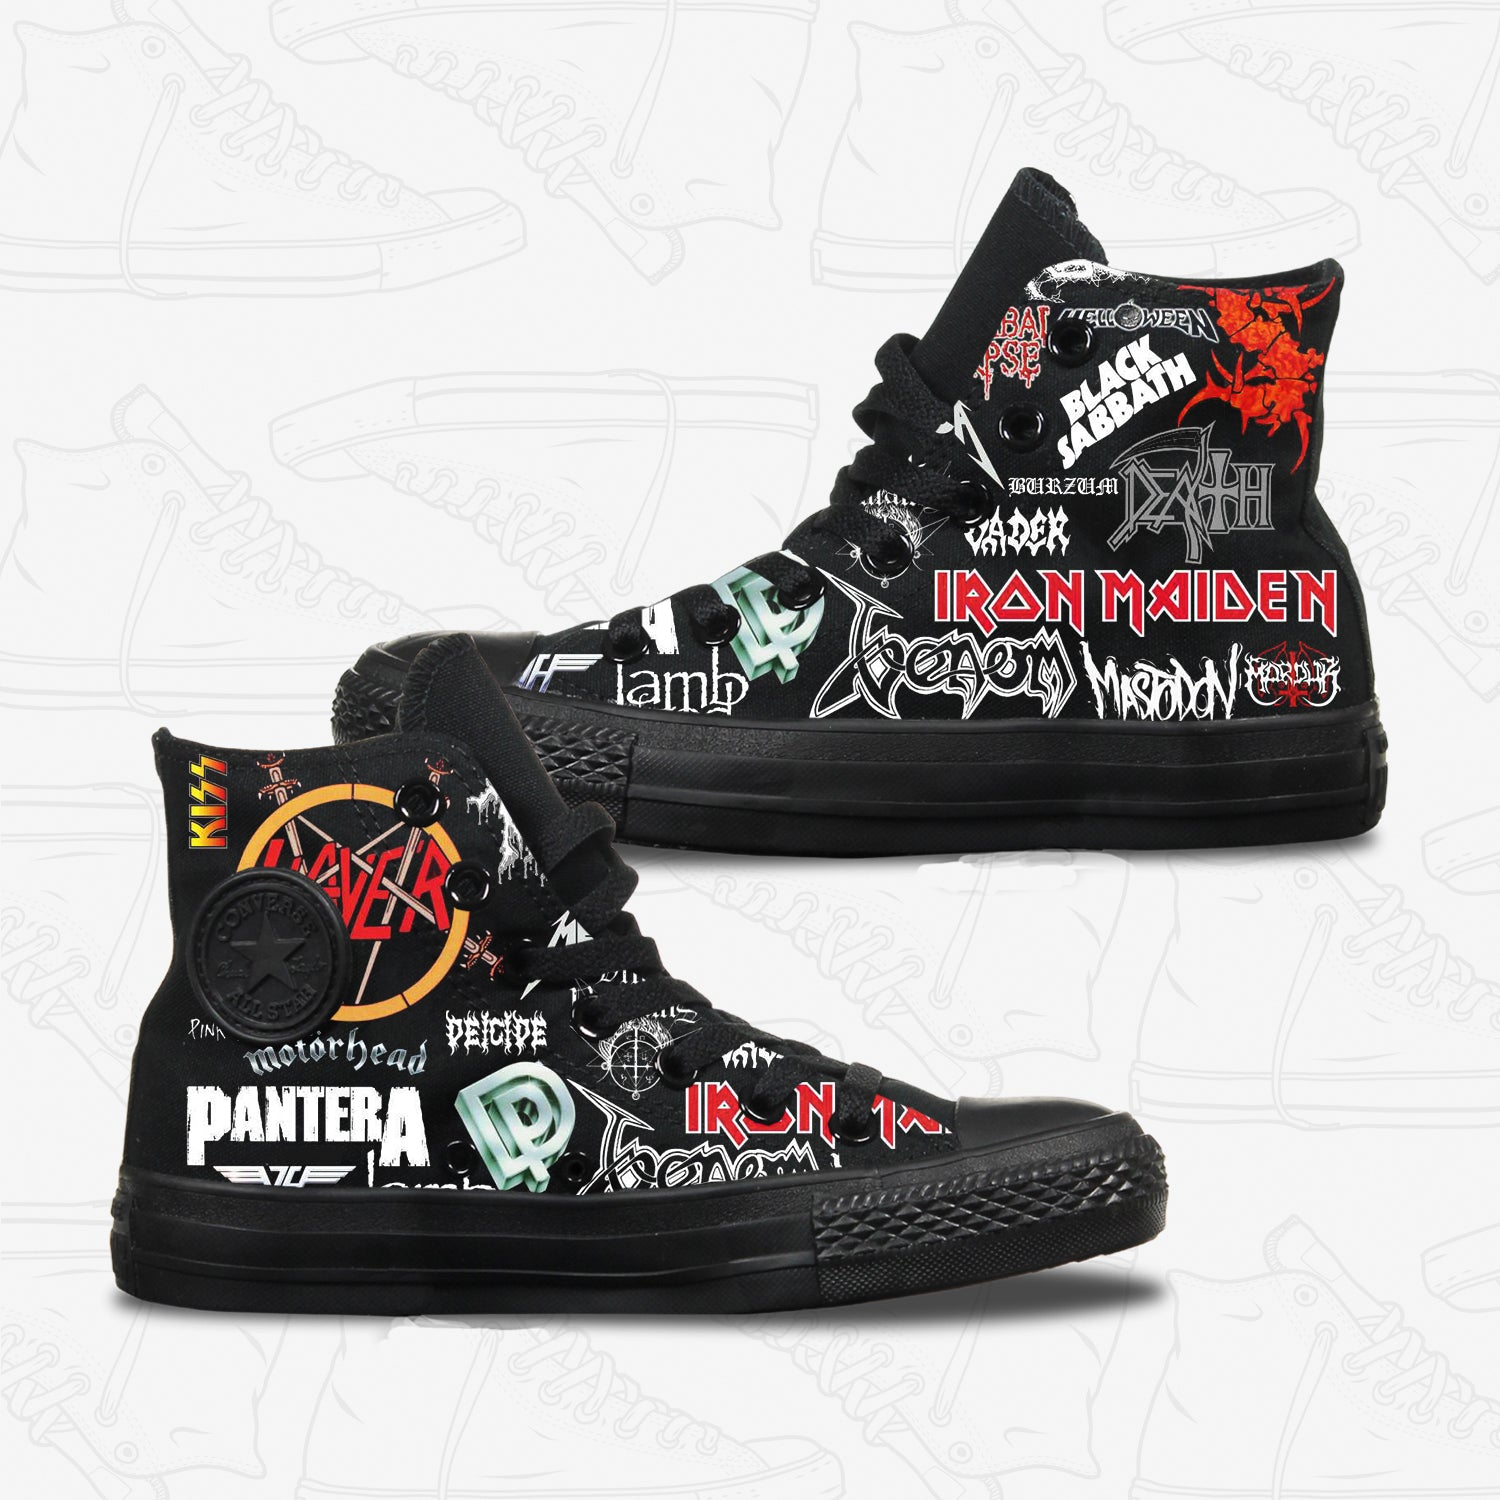 0fcf3ee52067 Converse Custom Iconic Rock Bands Adult Shoes